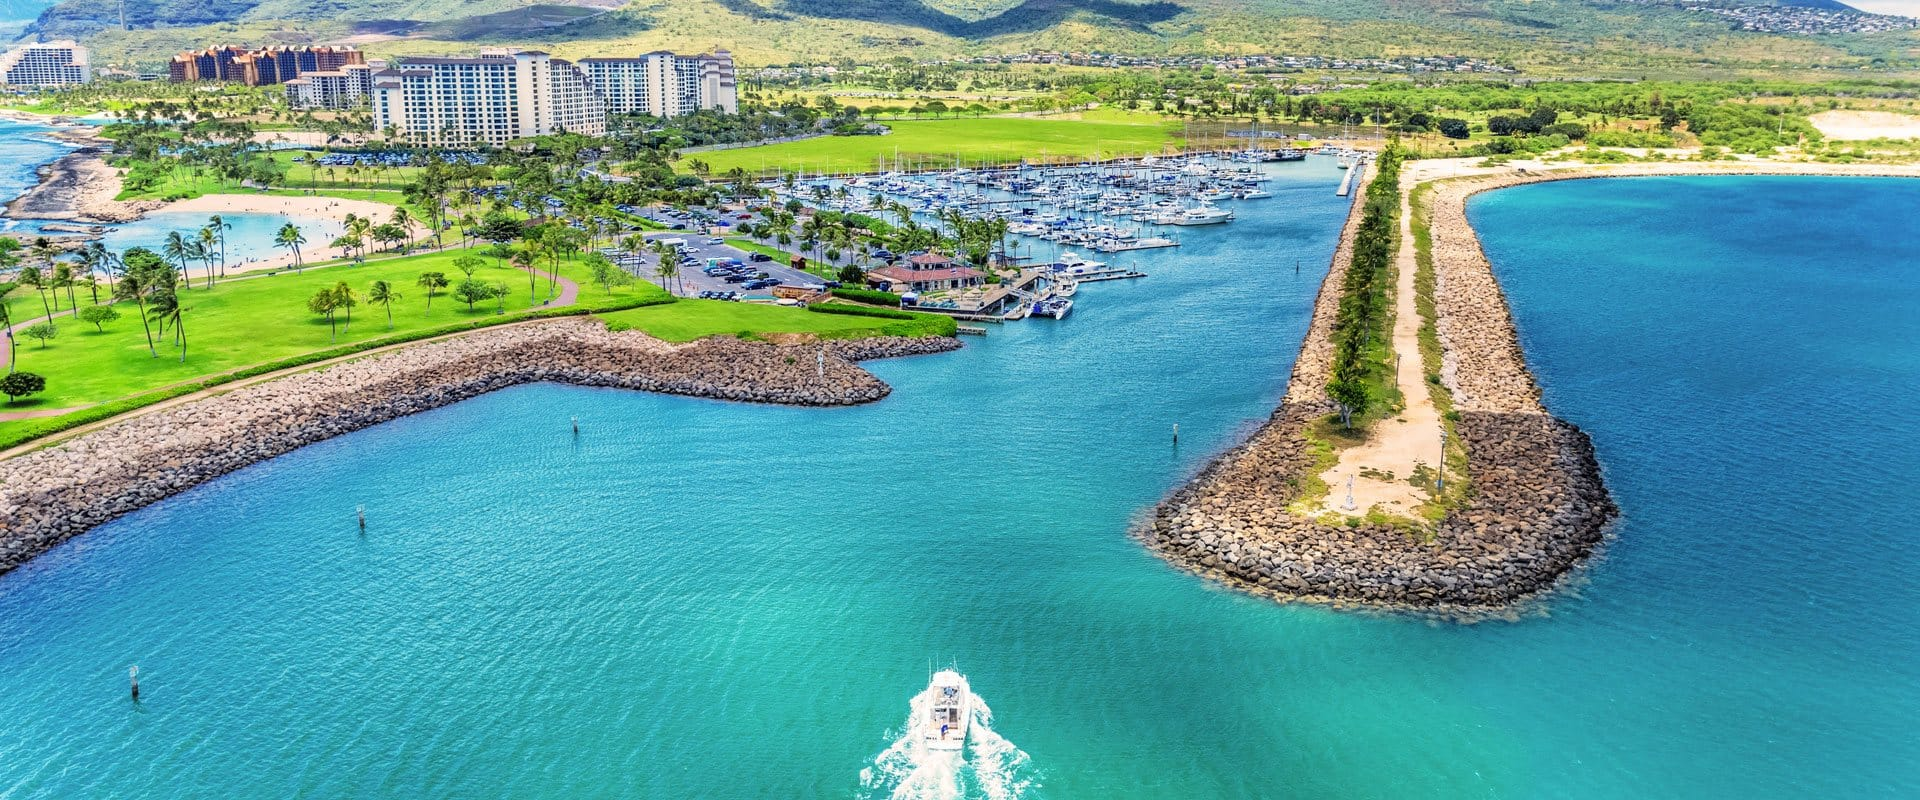 Departs daily from picturesque Ko Olina Marina